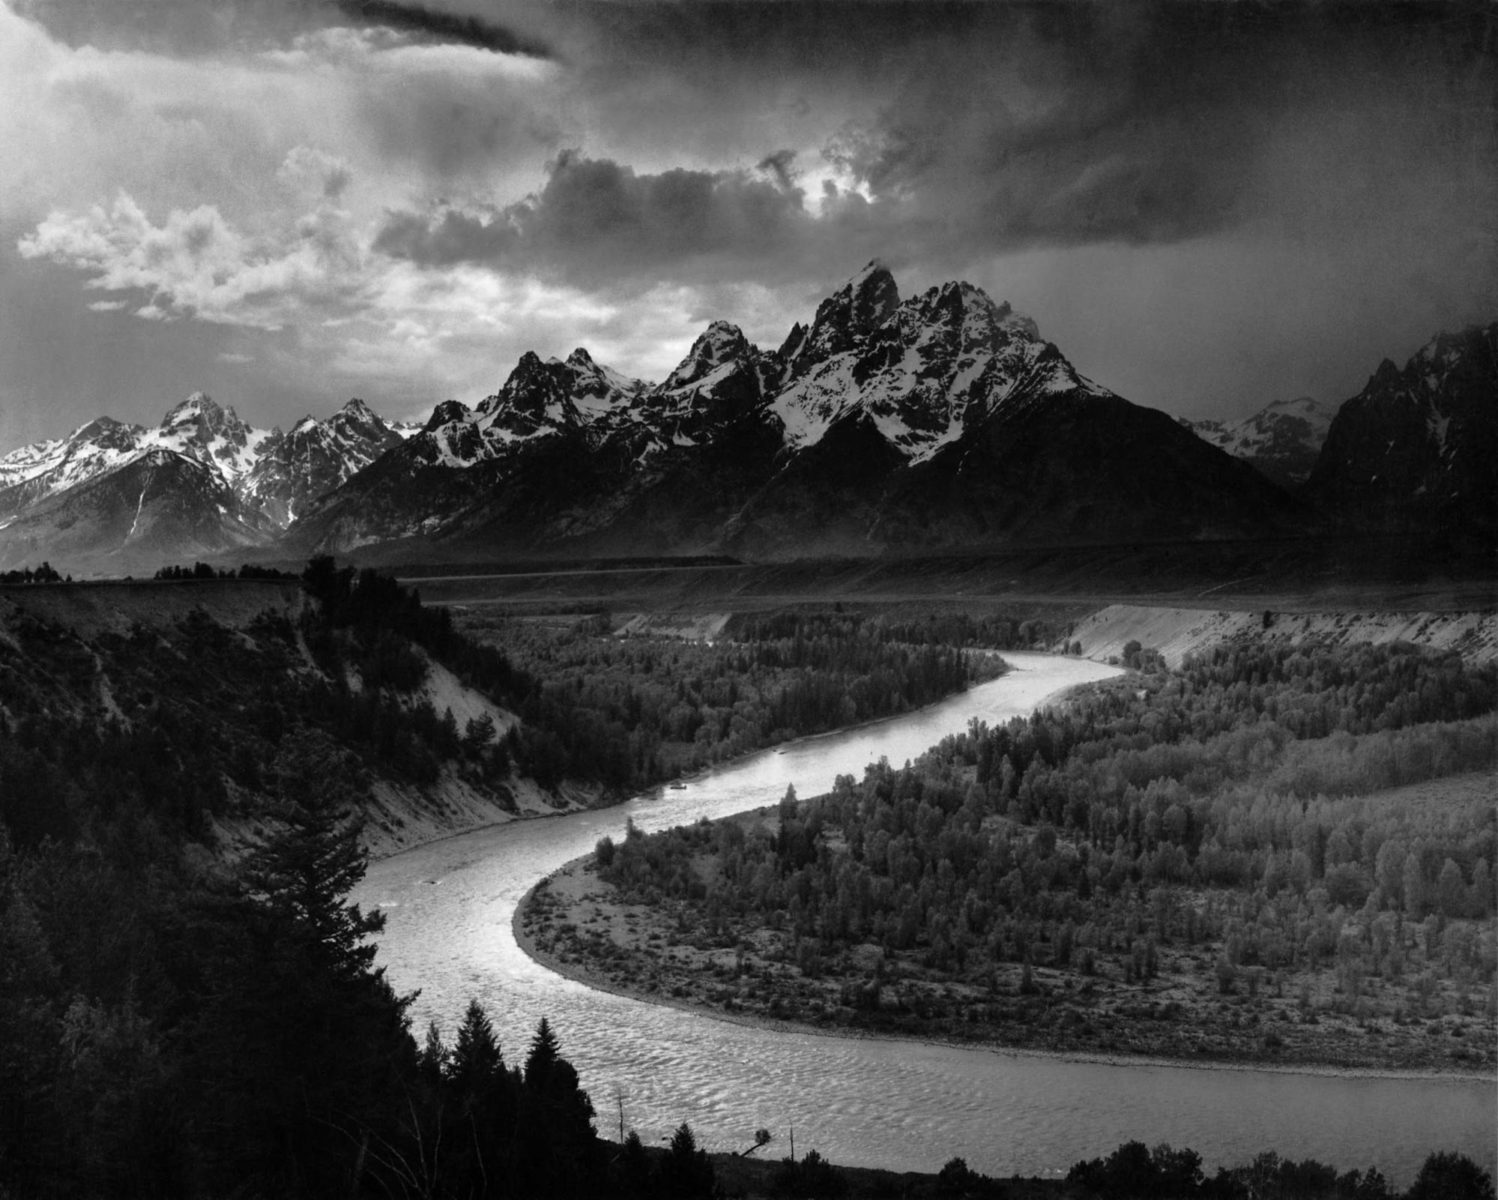 The Tetons and the Snake River, Wyoming, USA, 1942 © Ansel Adams